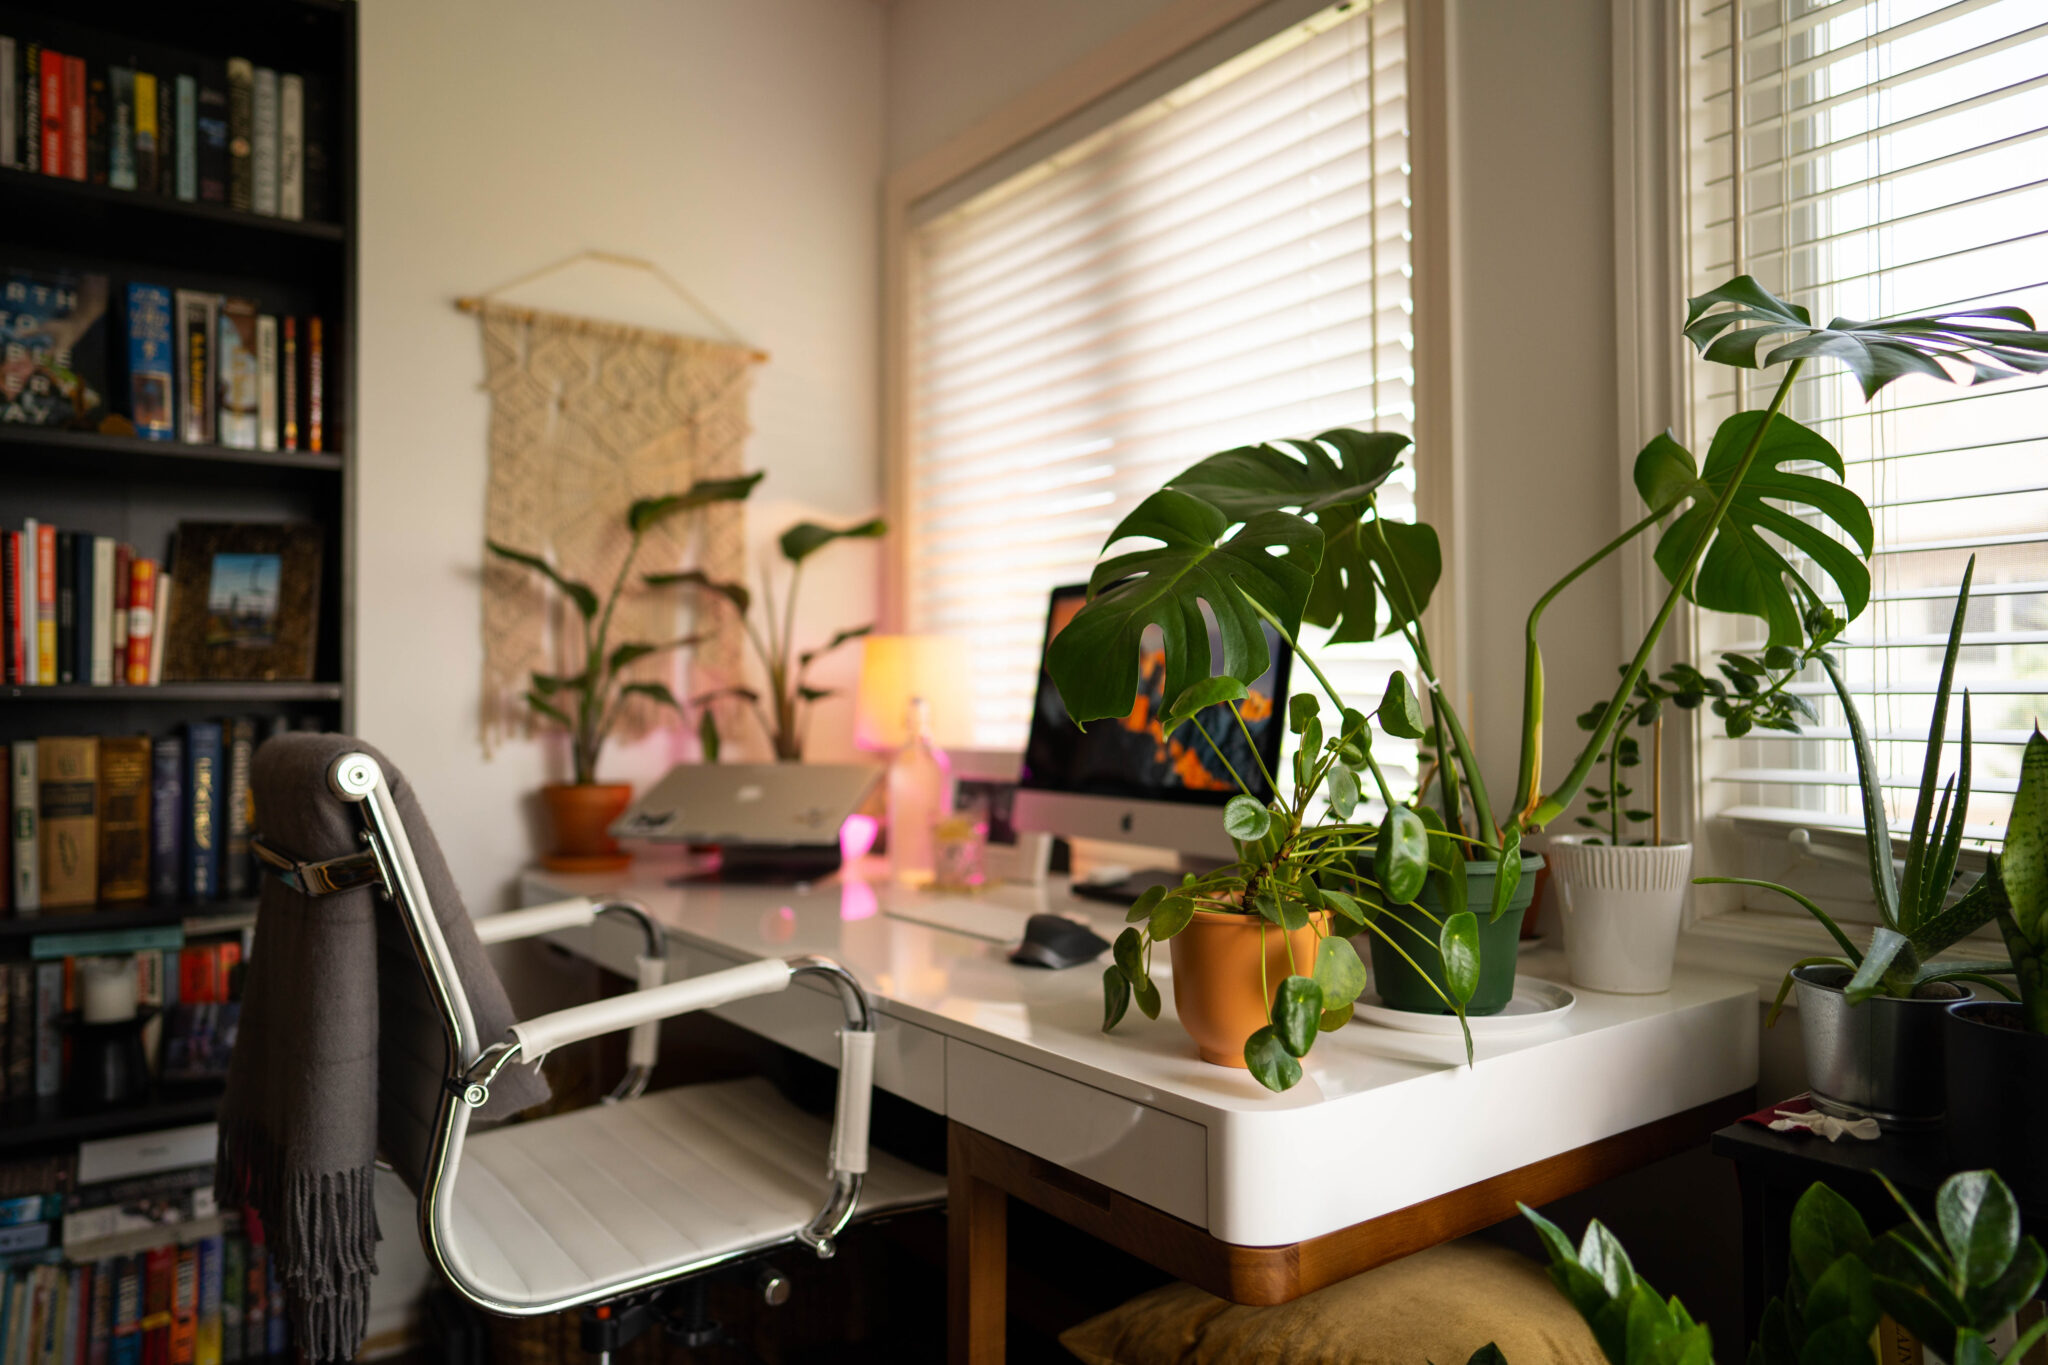 Minimal Clean Desk in the Daylight with Plants surrounding the edges and iMac